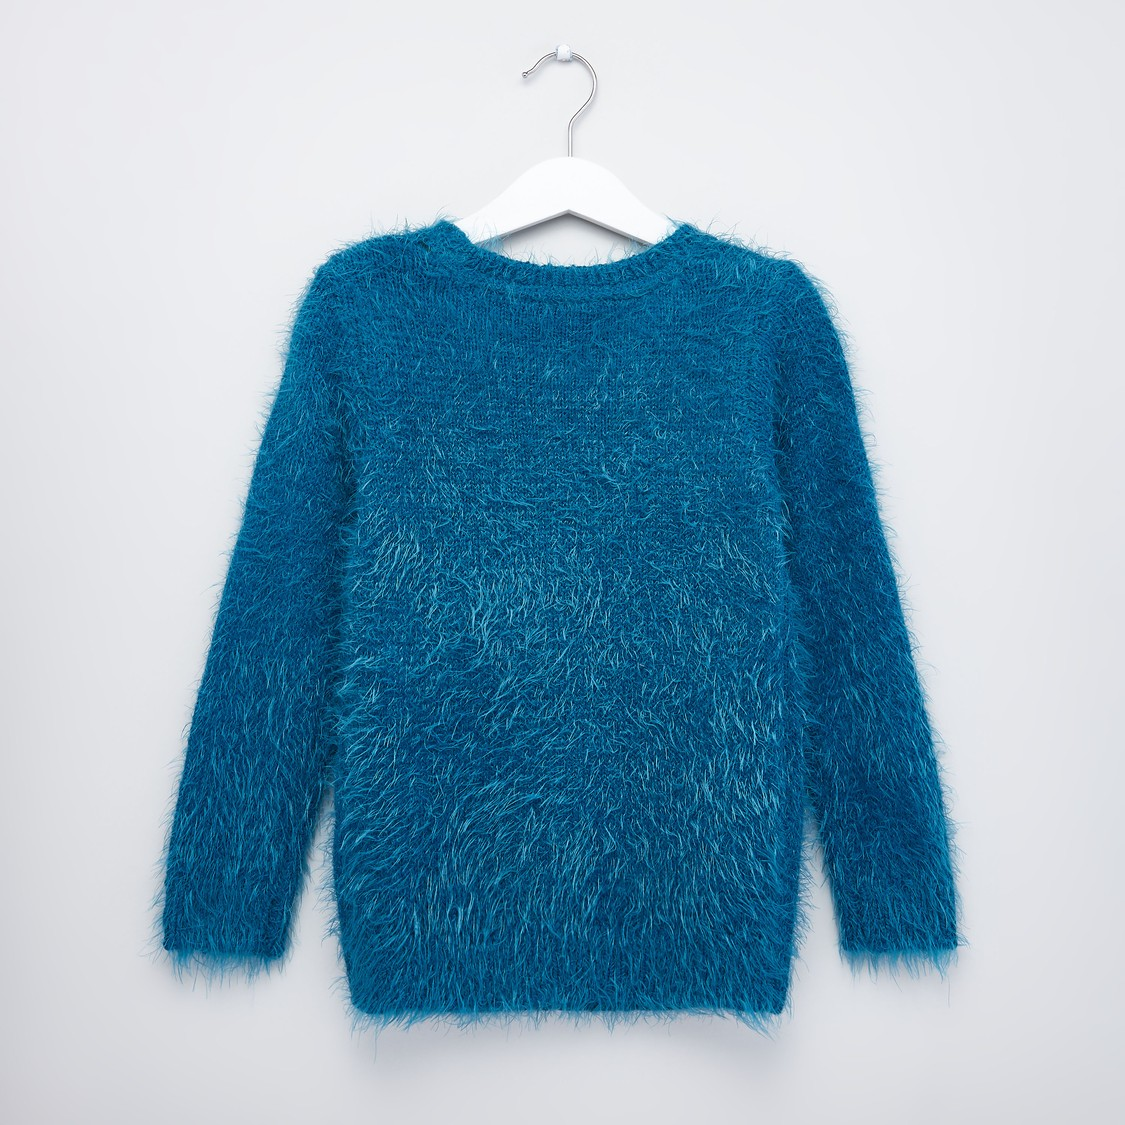 Textured Sweater with Long Sleeves and Applique Detail